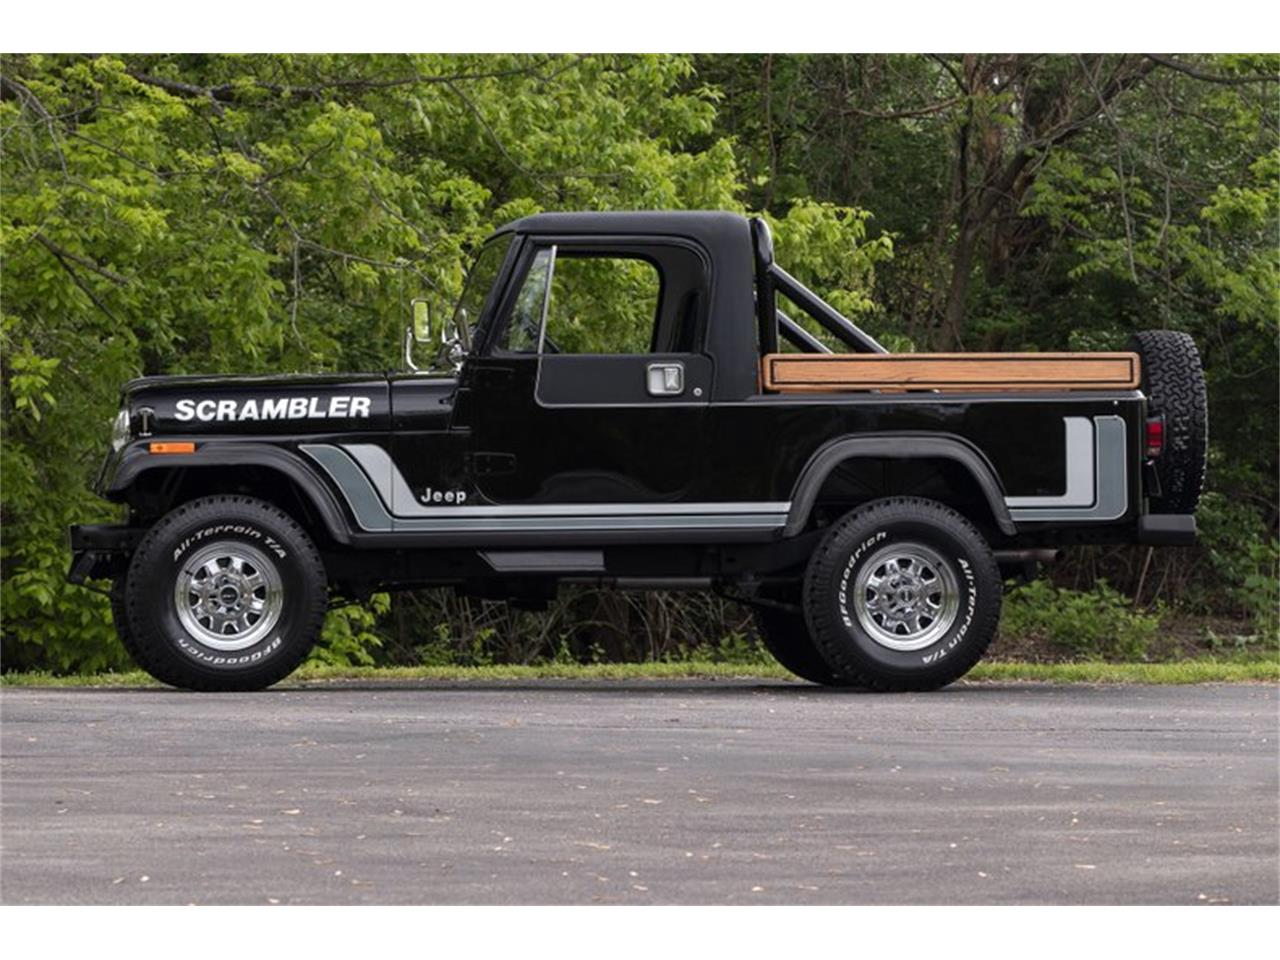 Large Picture of 1982 Jeep CJ8 Scrambler located in Missouri - $34,995.00 Offered by Fast Lane Classic Cars Inc. - Q11Z